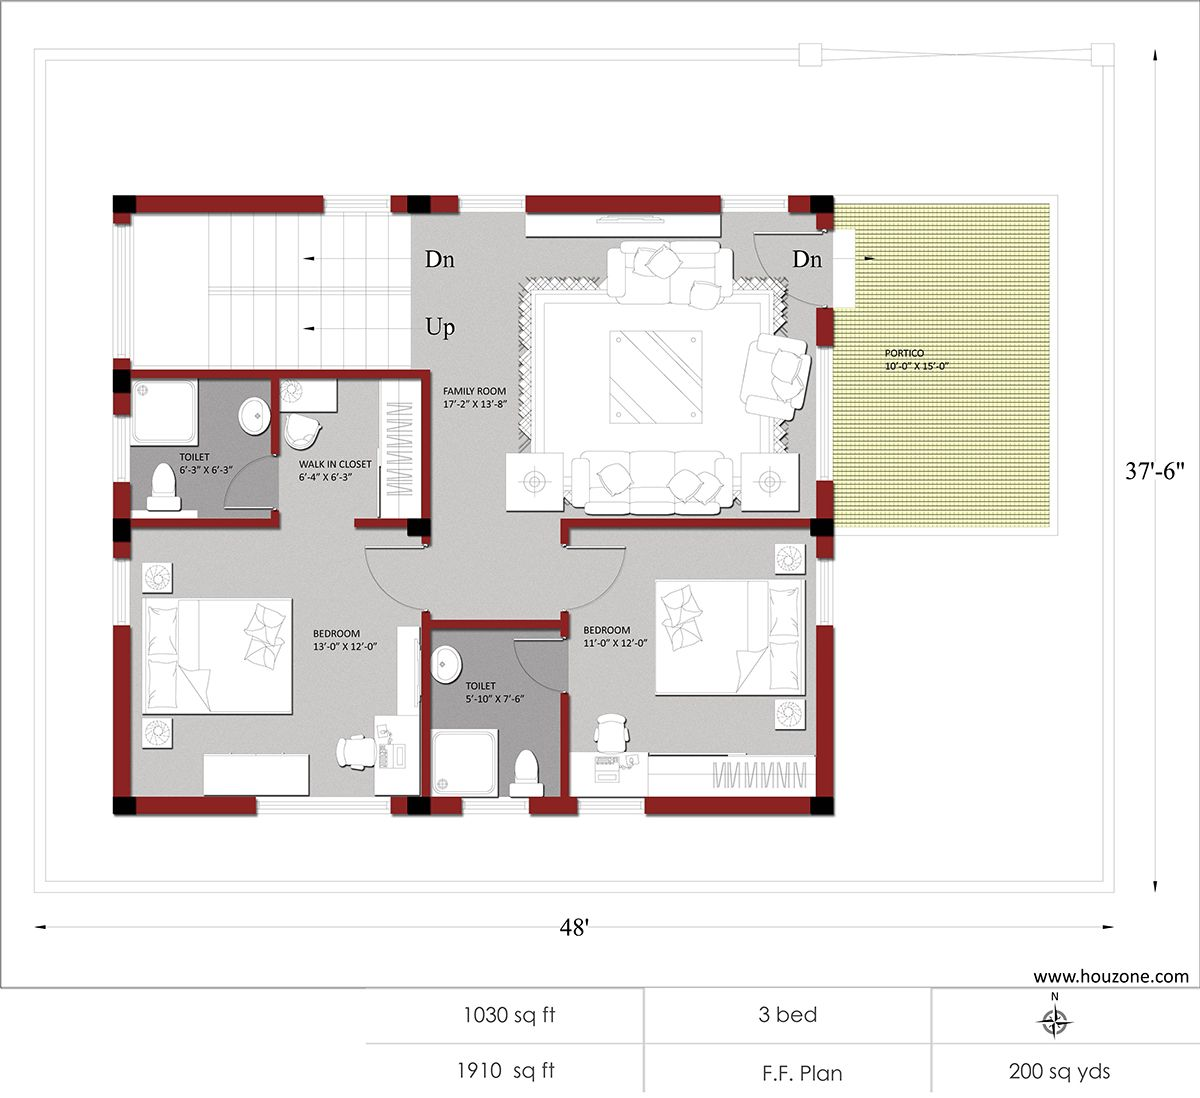 Duplex House Plans Designs India House Plans Indian House Plans Square House Plans